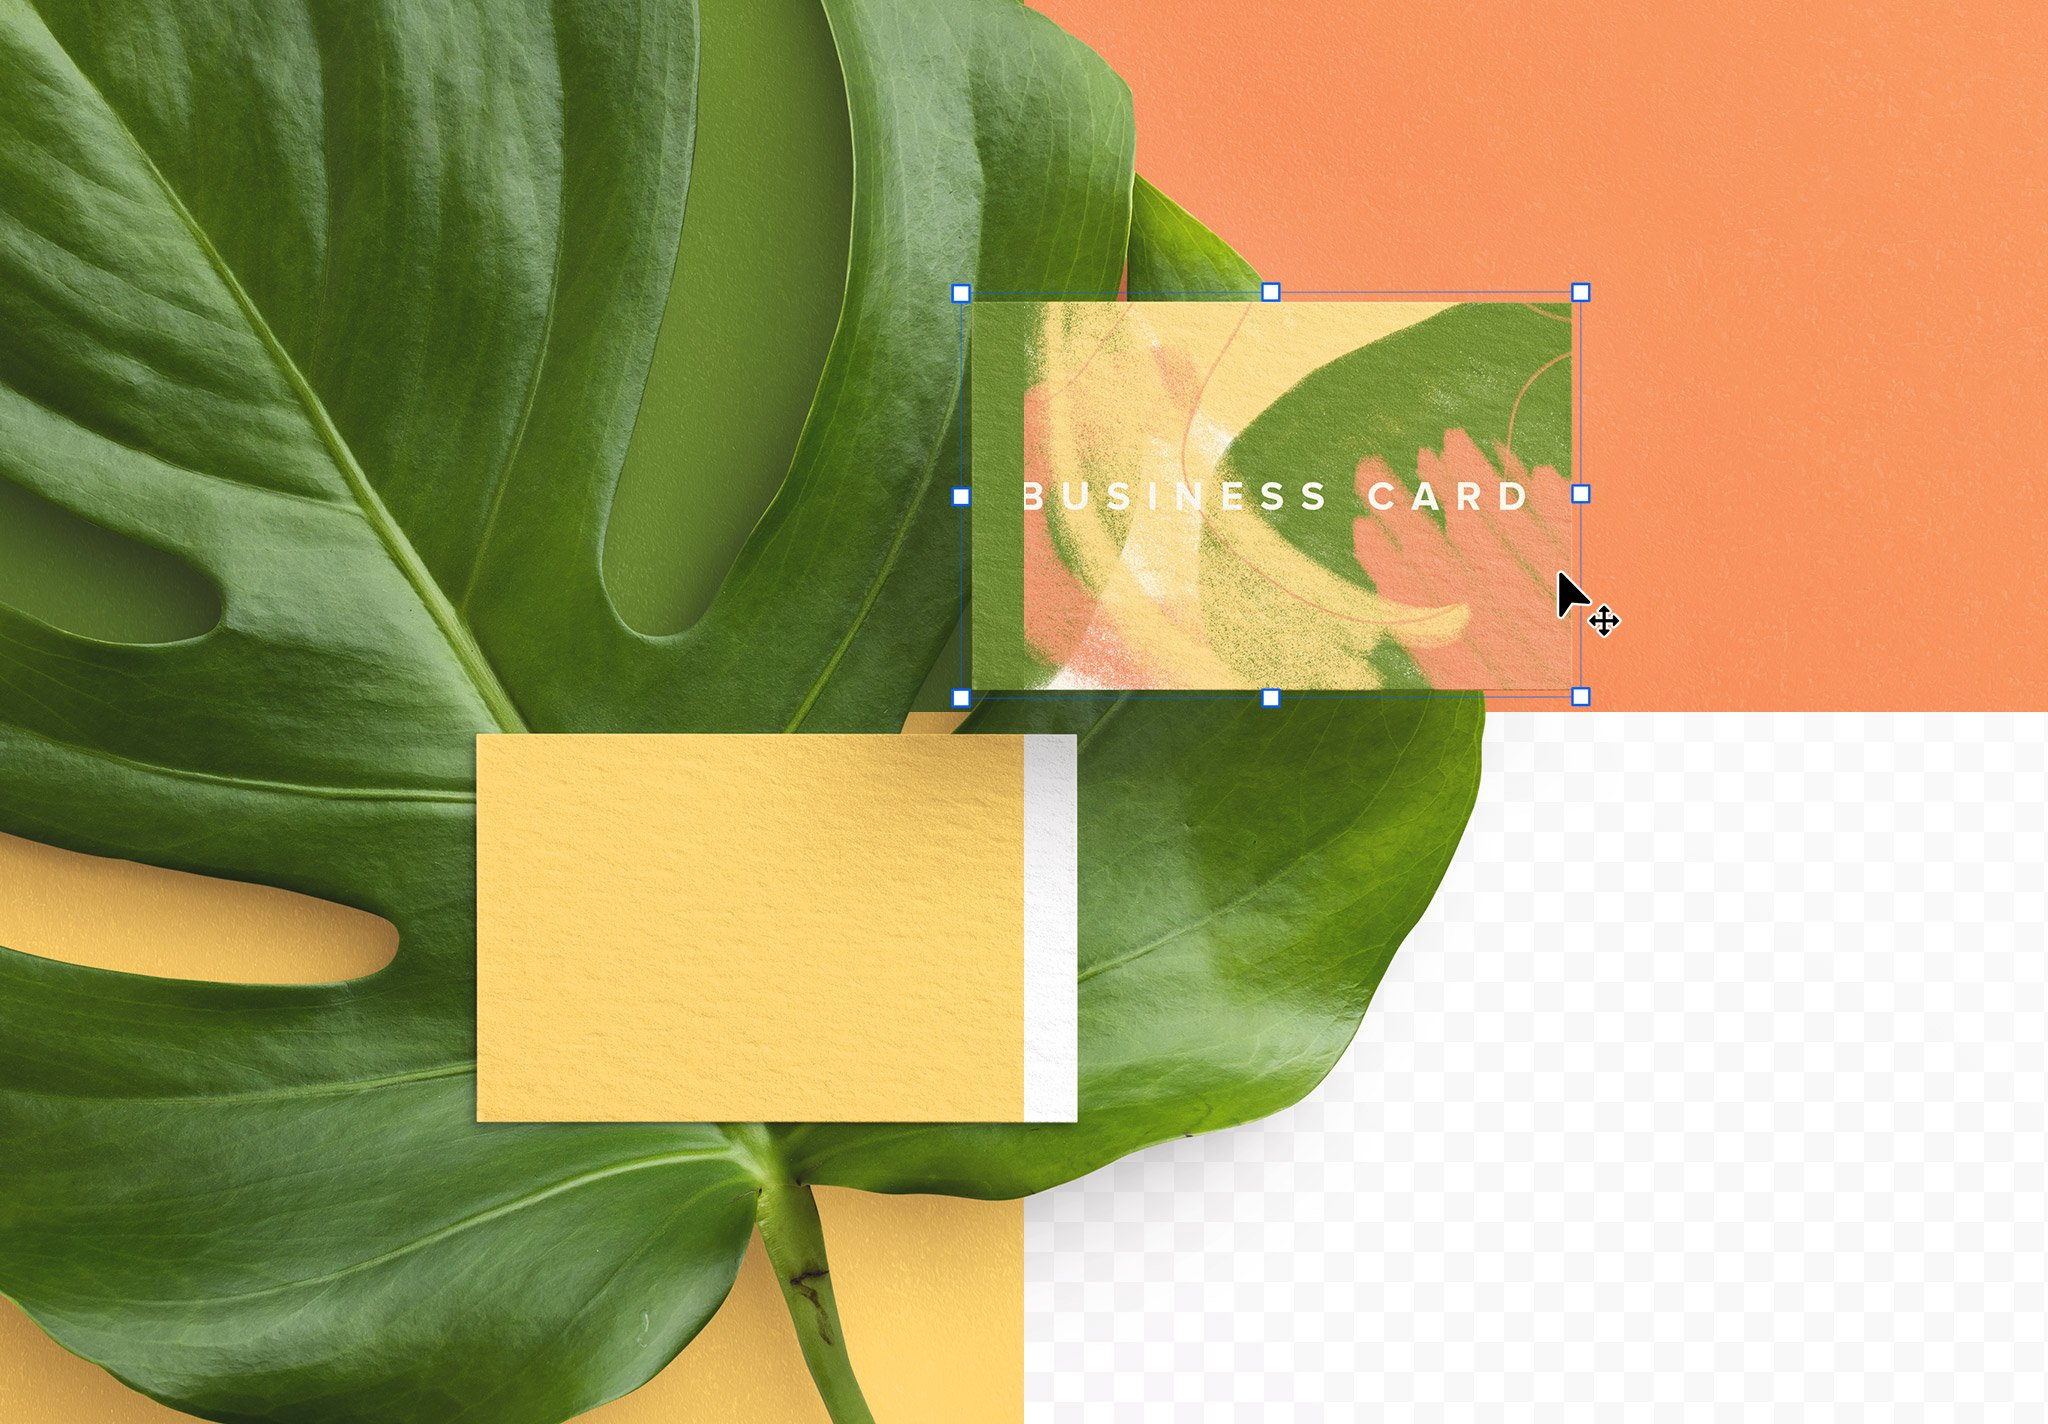 business card monstera plant image02